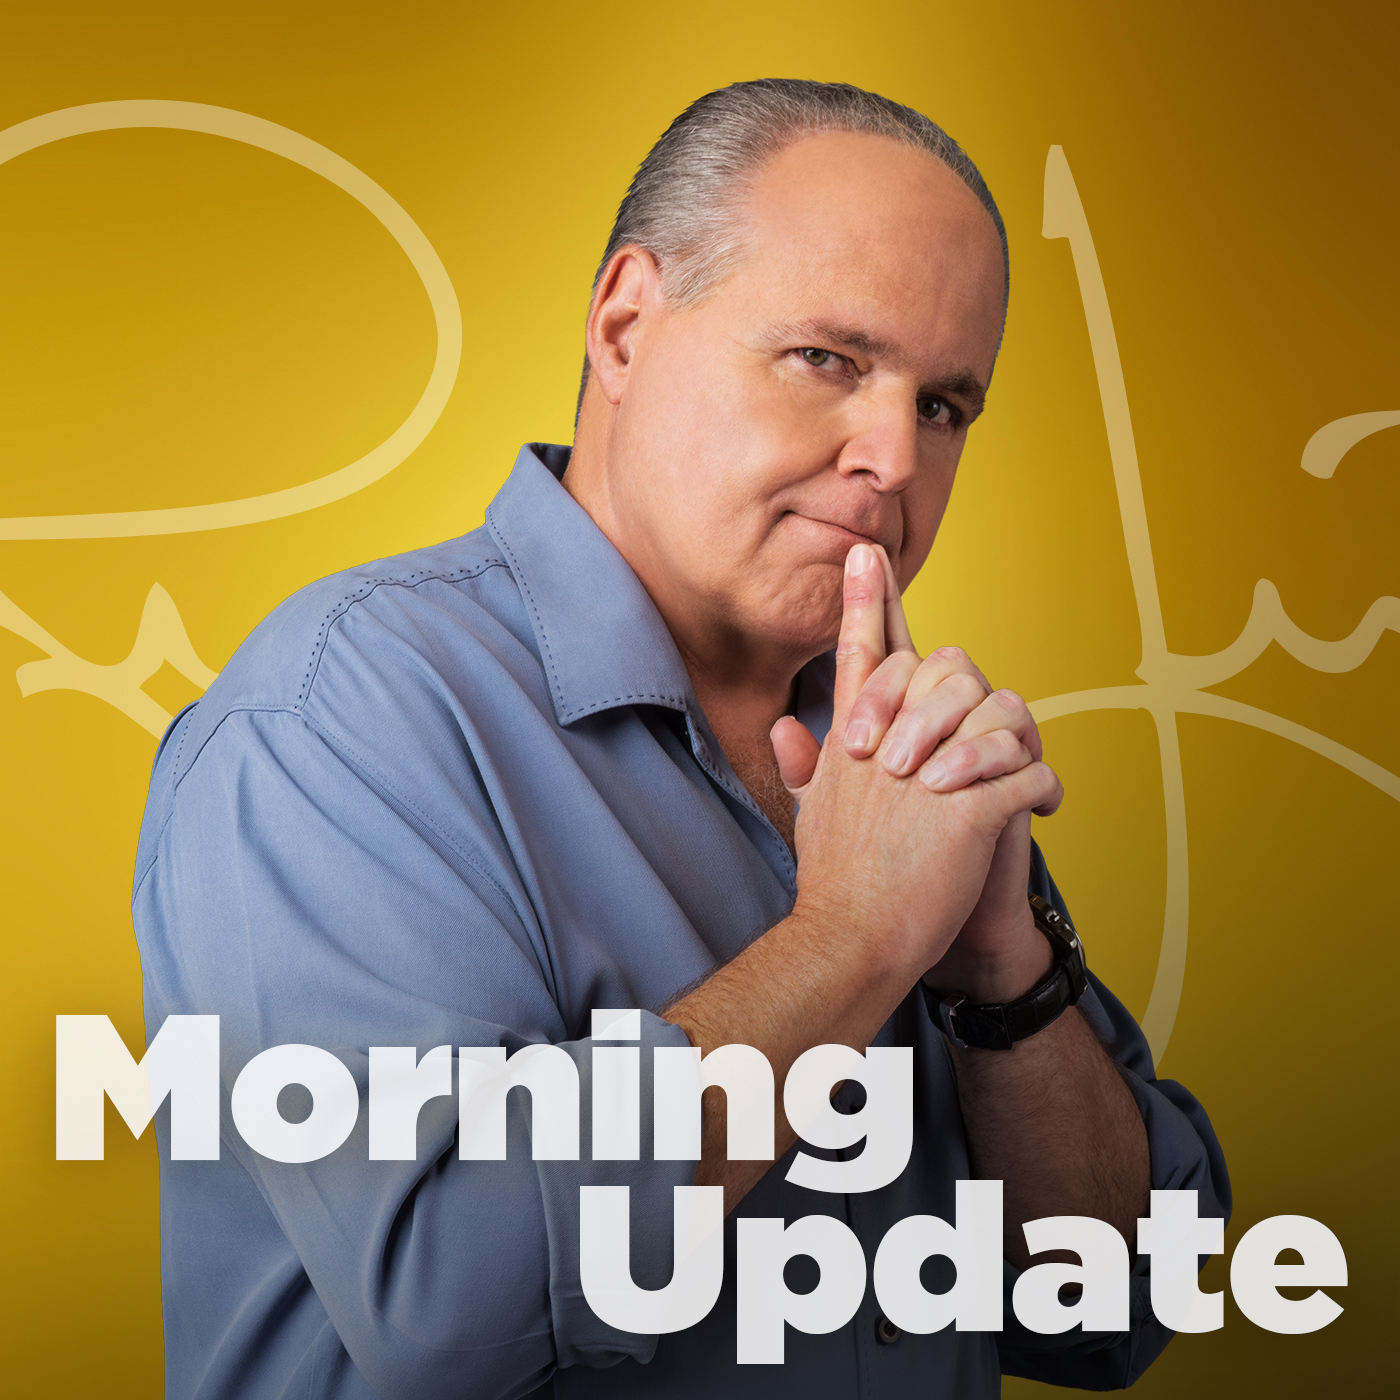 Rush Limbaugh Dec 13, 2019